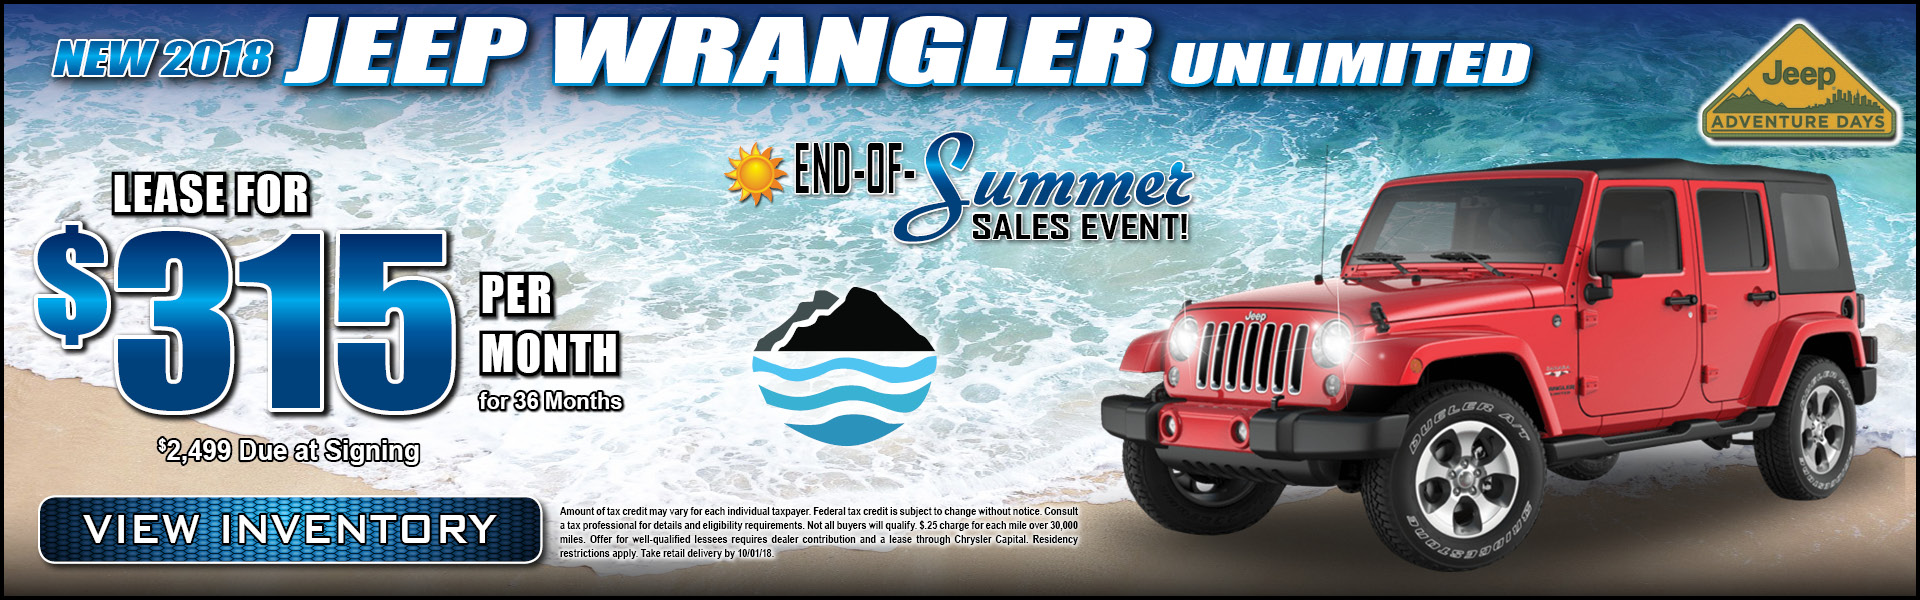 Jeep Wrangler Unlimited $315 Lease